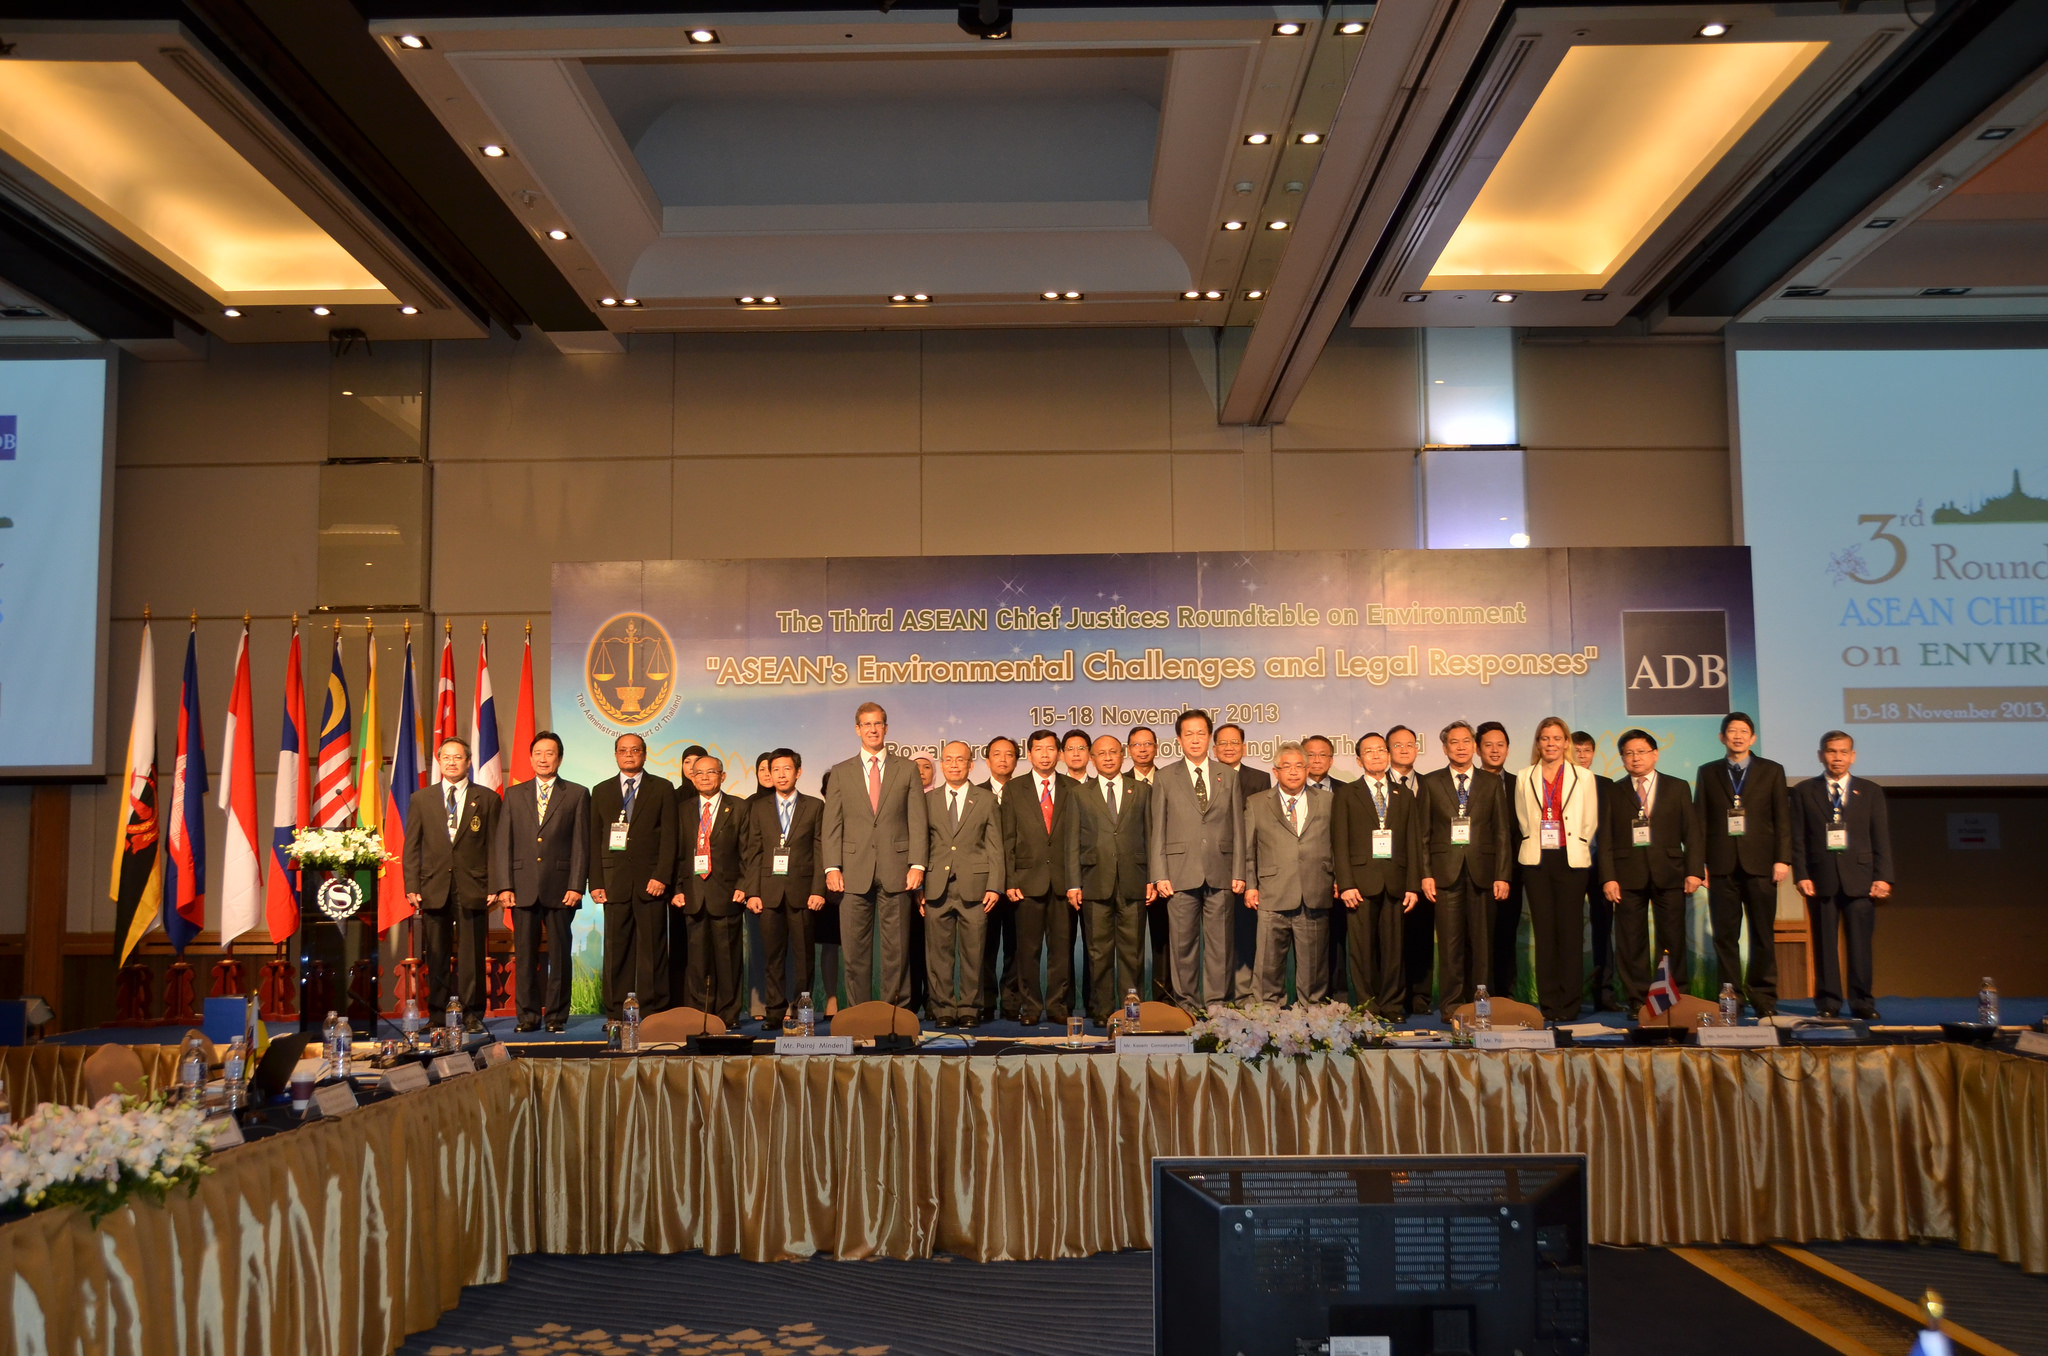 Group photo of the participants from the Session 1 of the Third Roundtable for ASEAN Chief Justices on Environment held in Bangkok, Thailand, on 15-18 November 2013.